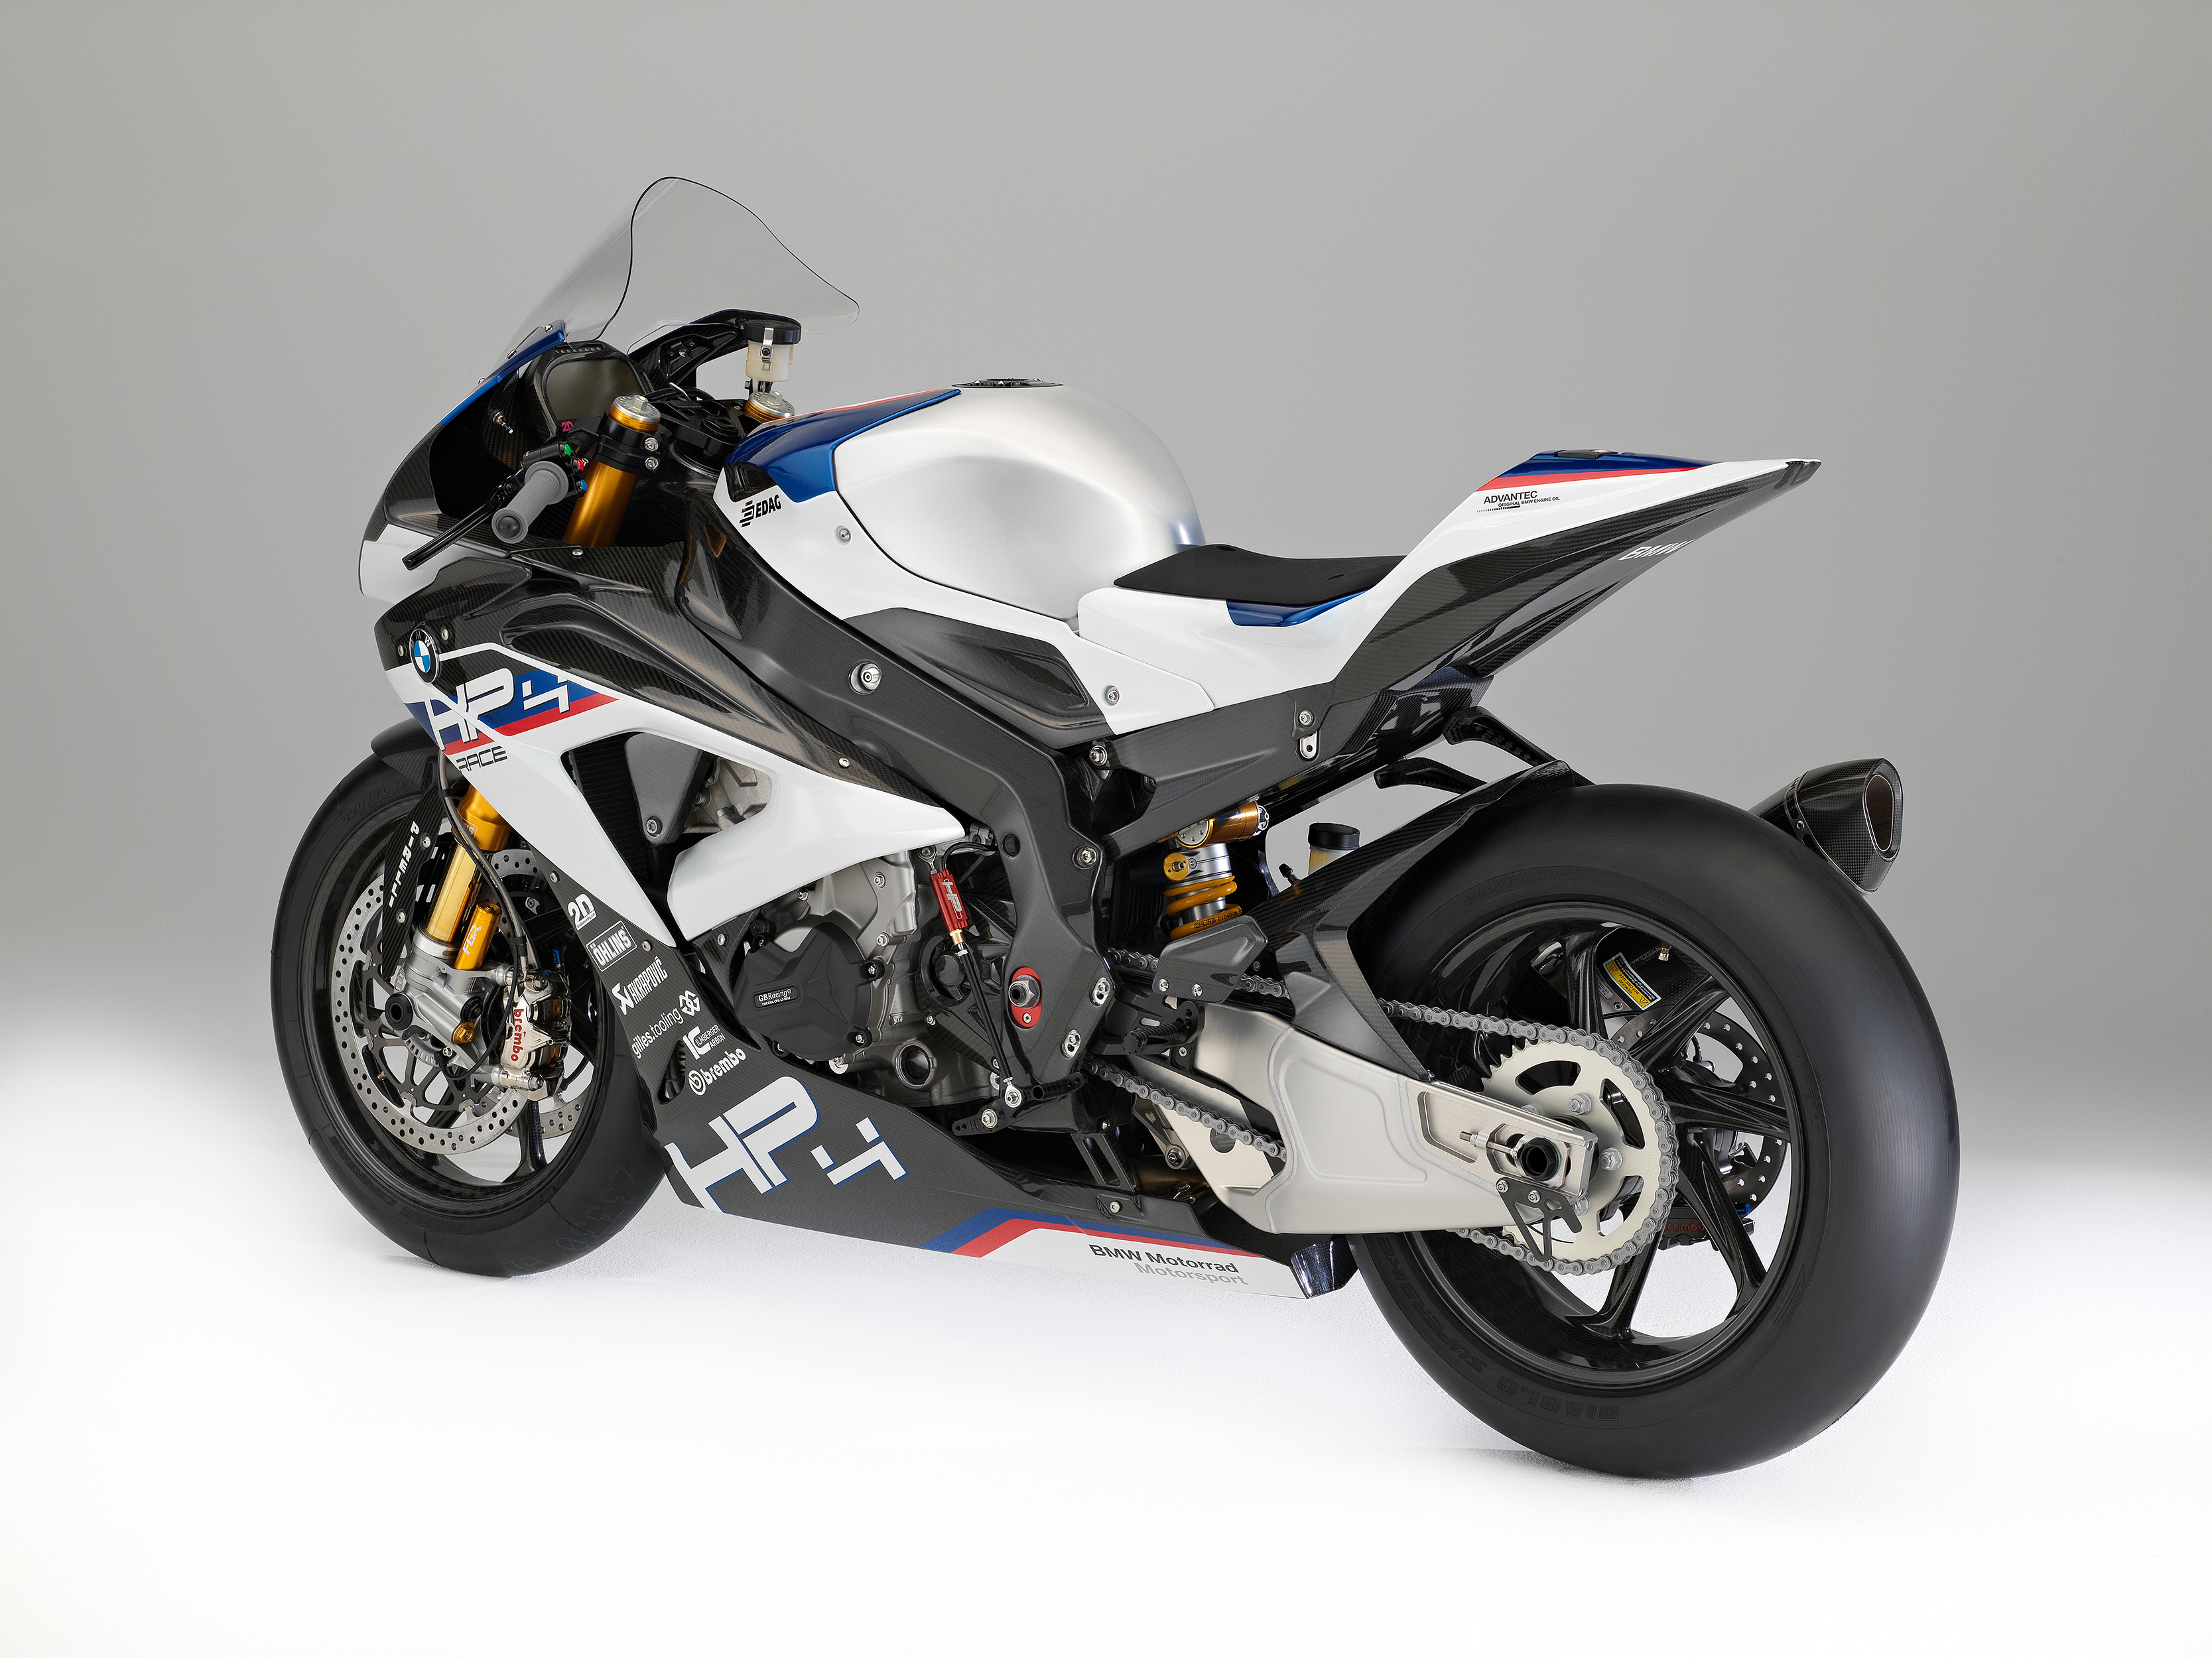 BMW S 1000 RR HP4 Race, BMW G 310 GS and BMW S 1000 XR